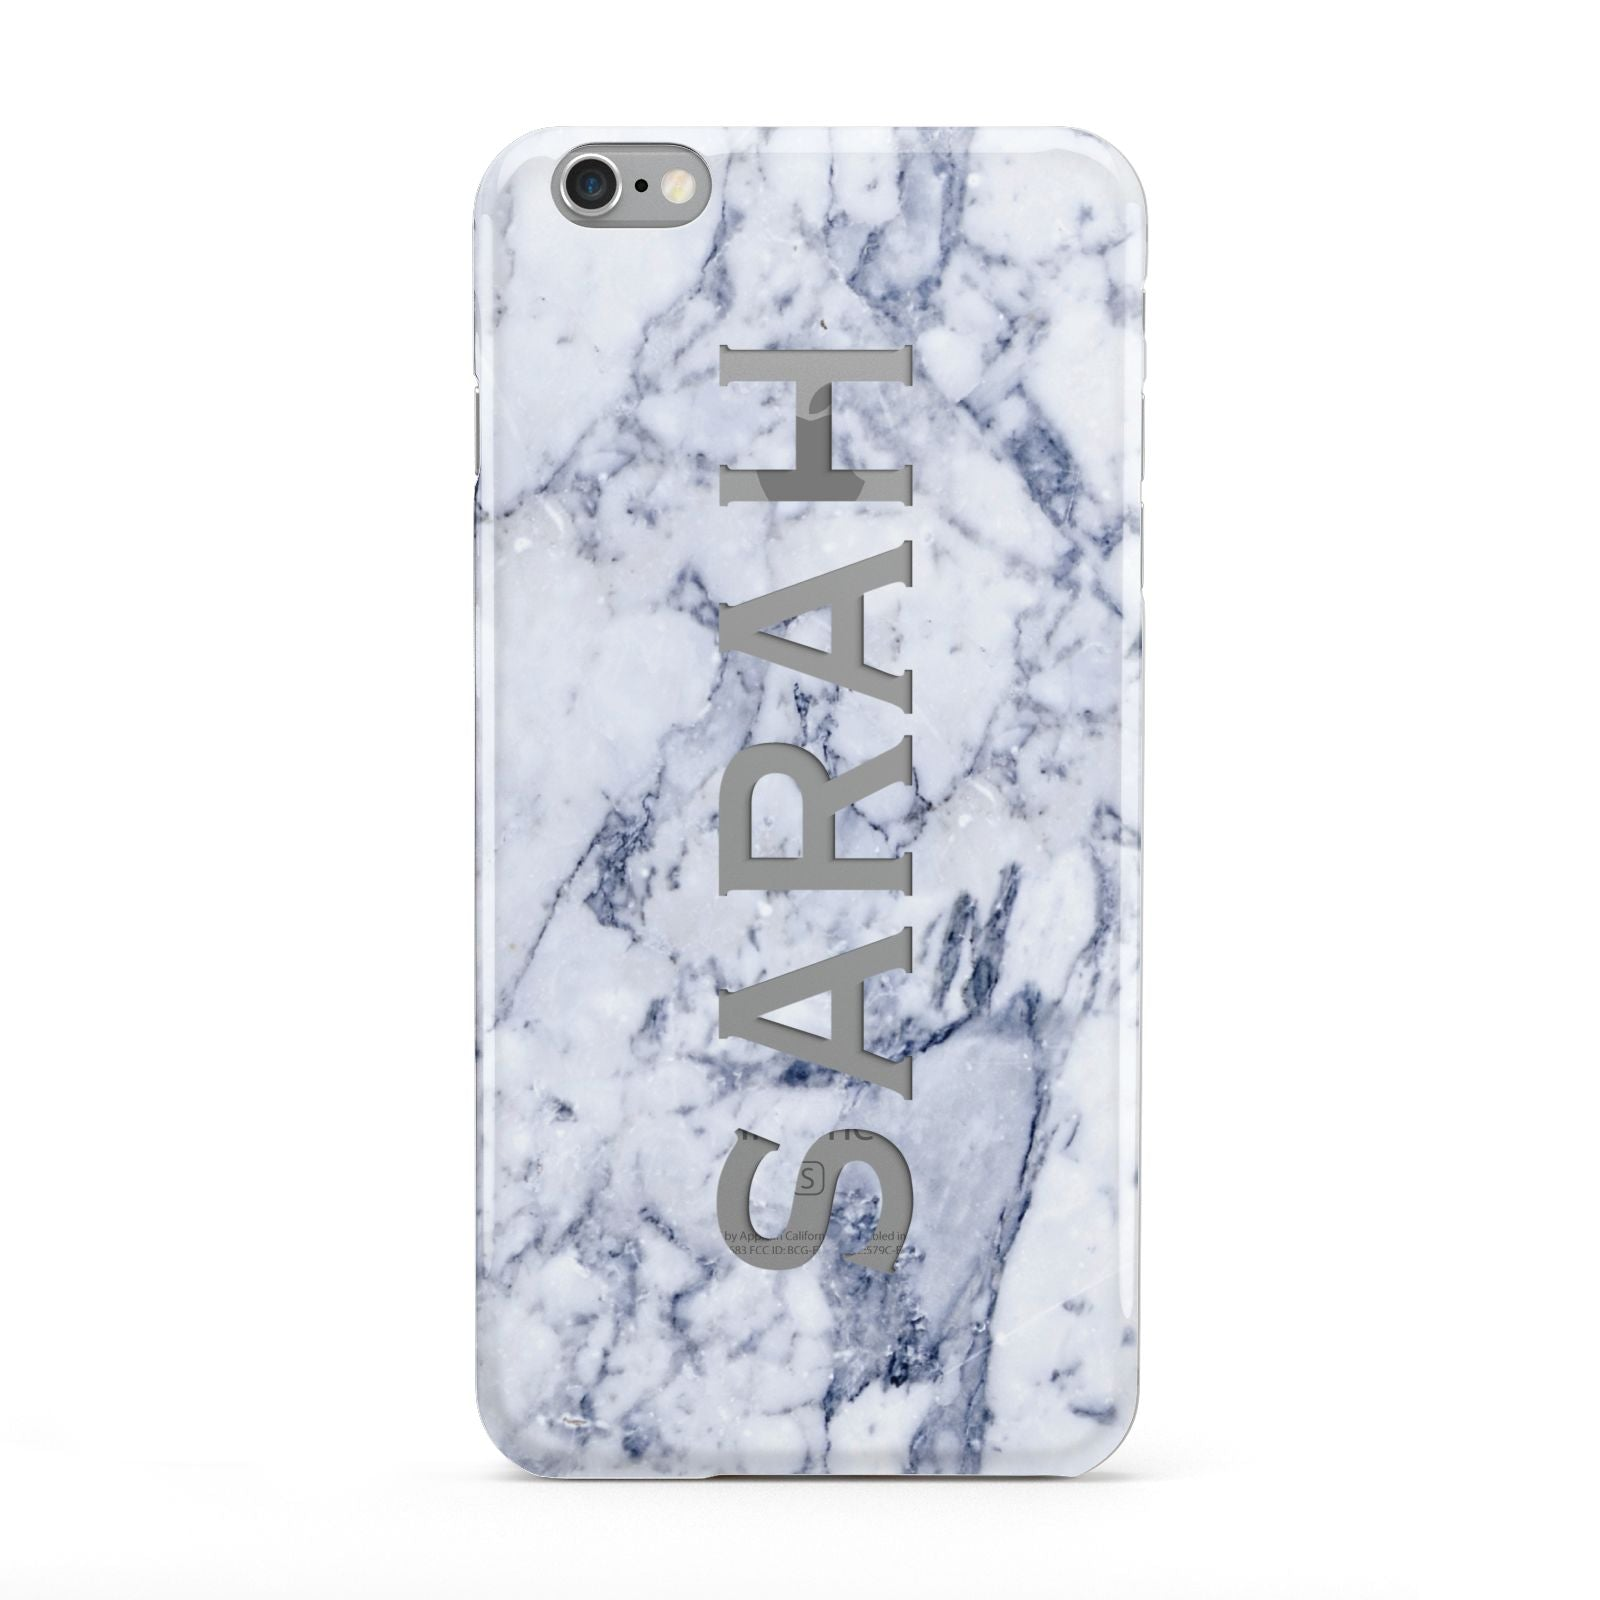 Personalised Clear Name Cutout Blue Marble Custom Apple iPhone 6 Plus Case